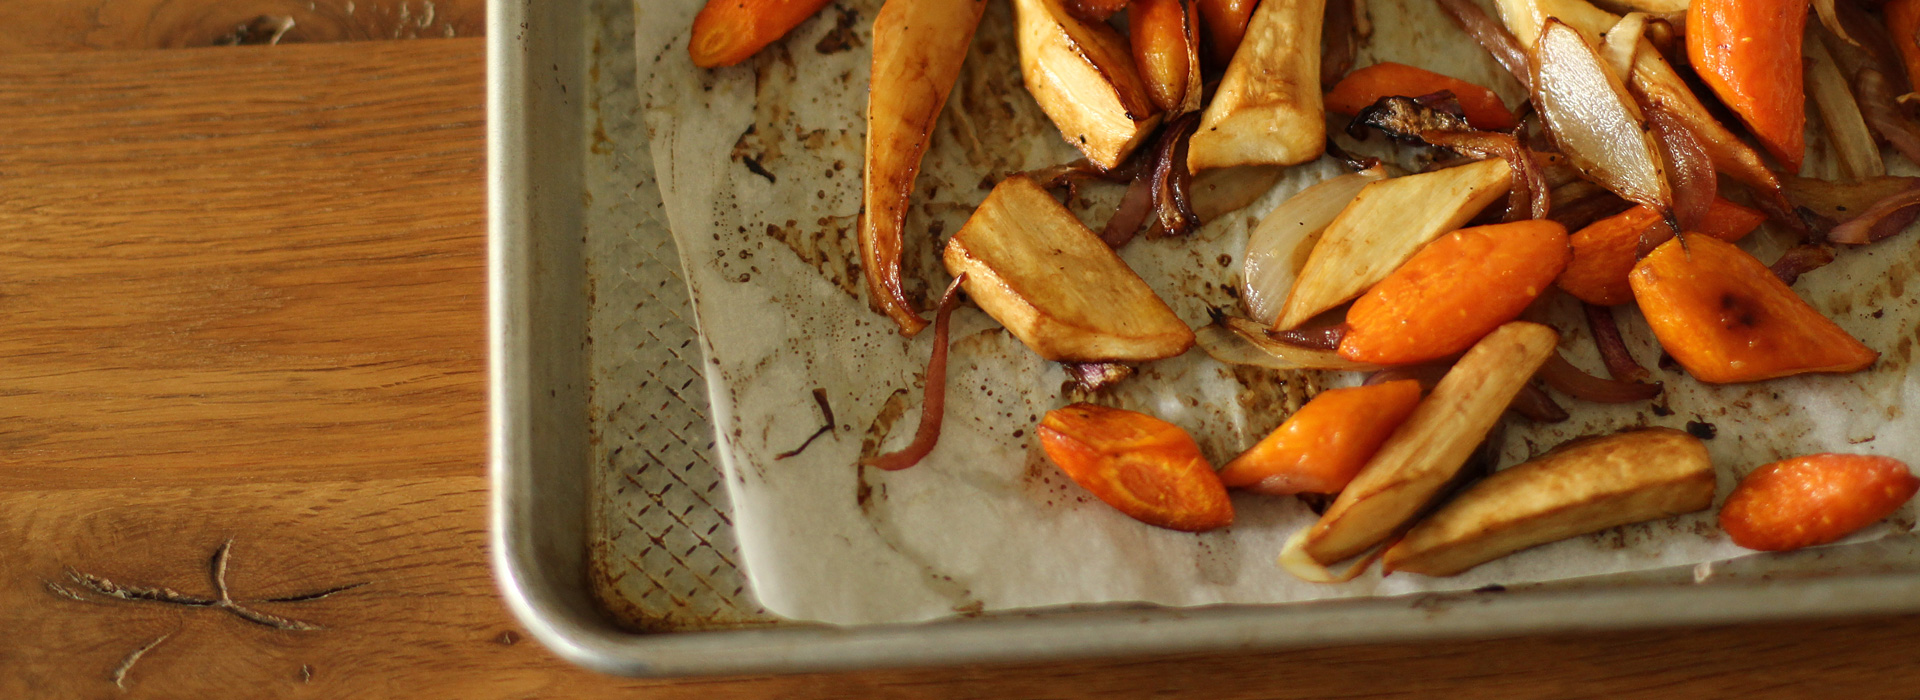 <p>Served with roasted vegetables, the caramel sweetness of prune juice concentrate makes it resemble balsamic vinegar. When used with red wine vinegar, the result tastes like aged balsamic vinegar. Here, the concentrate creates a caramelized glaze for root vegetables.</p>